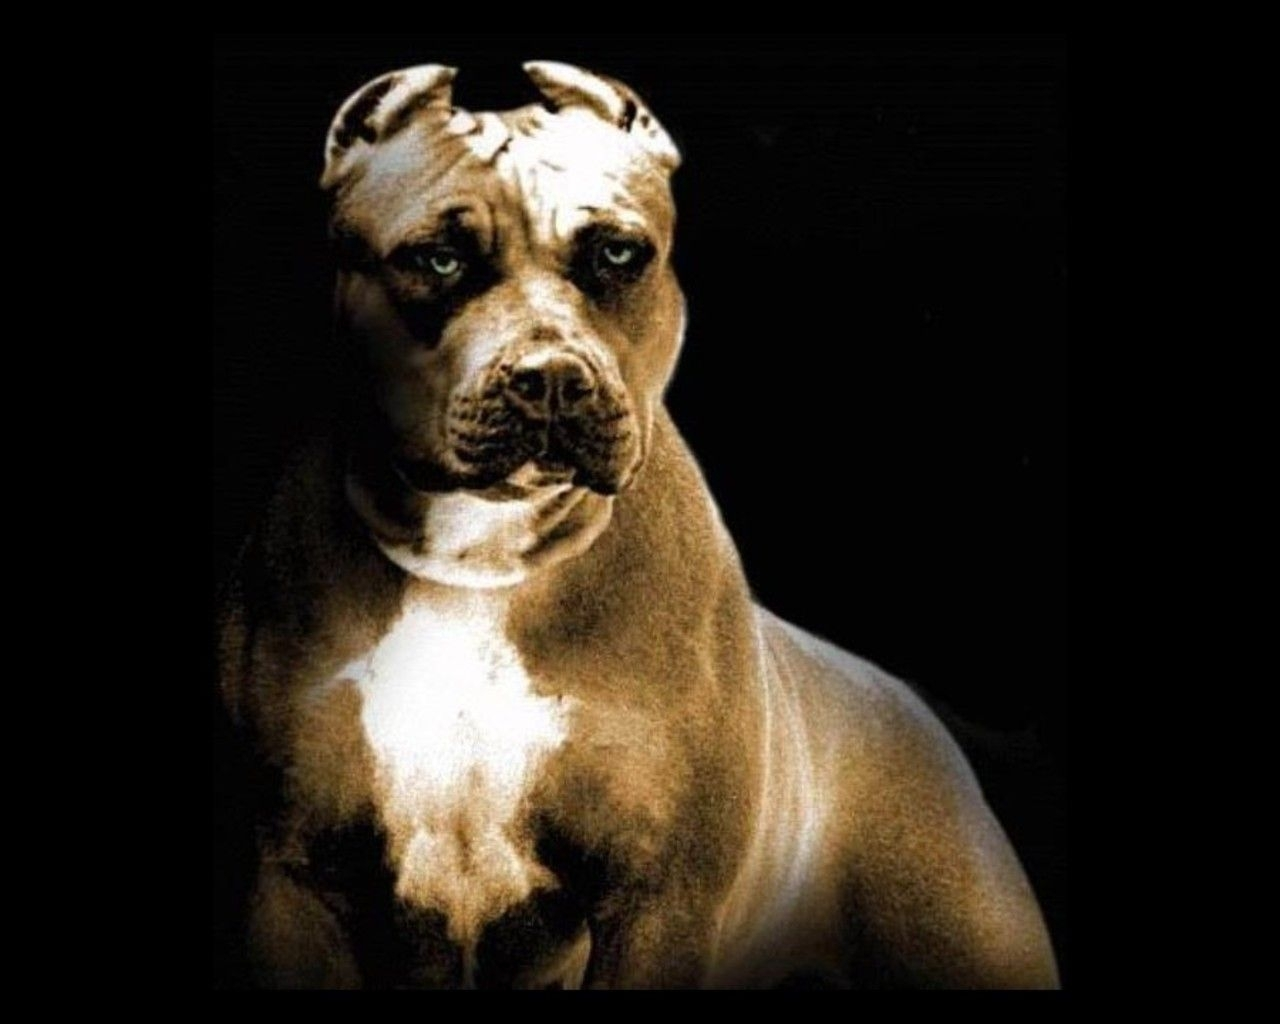 pitbull wallpapers old pitbul | dogs wallpapers | pinterest | dog